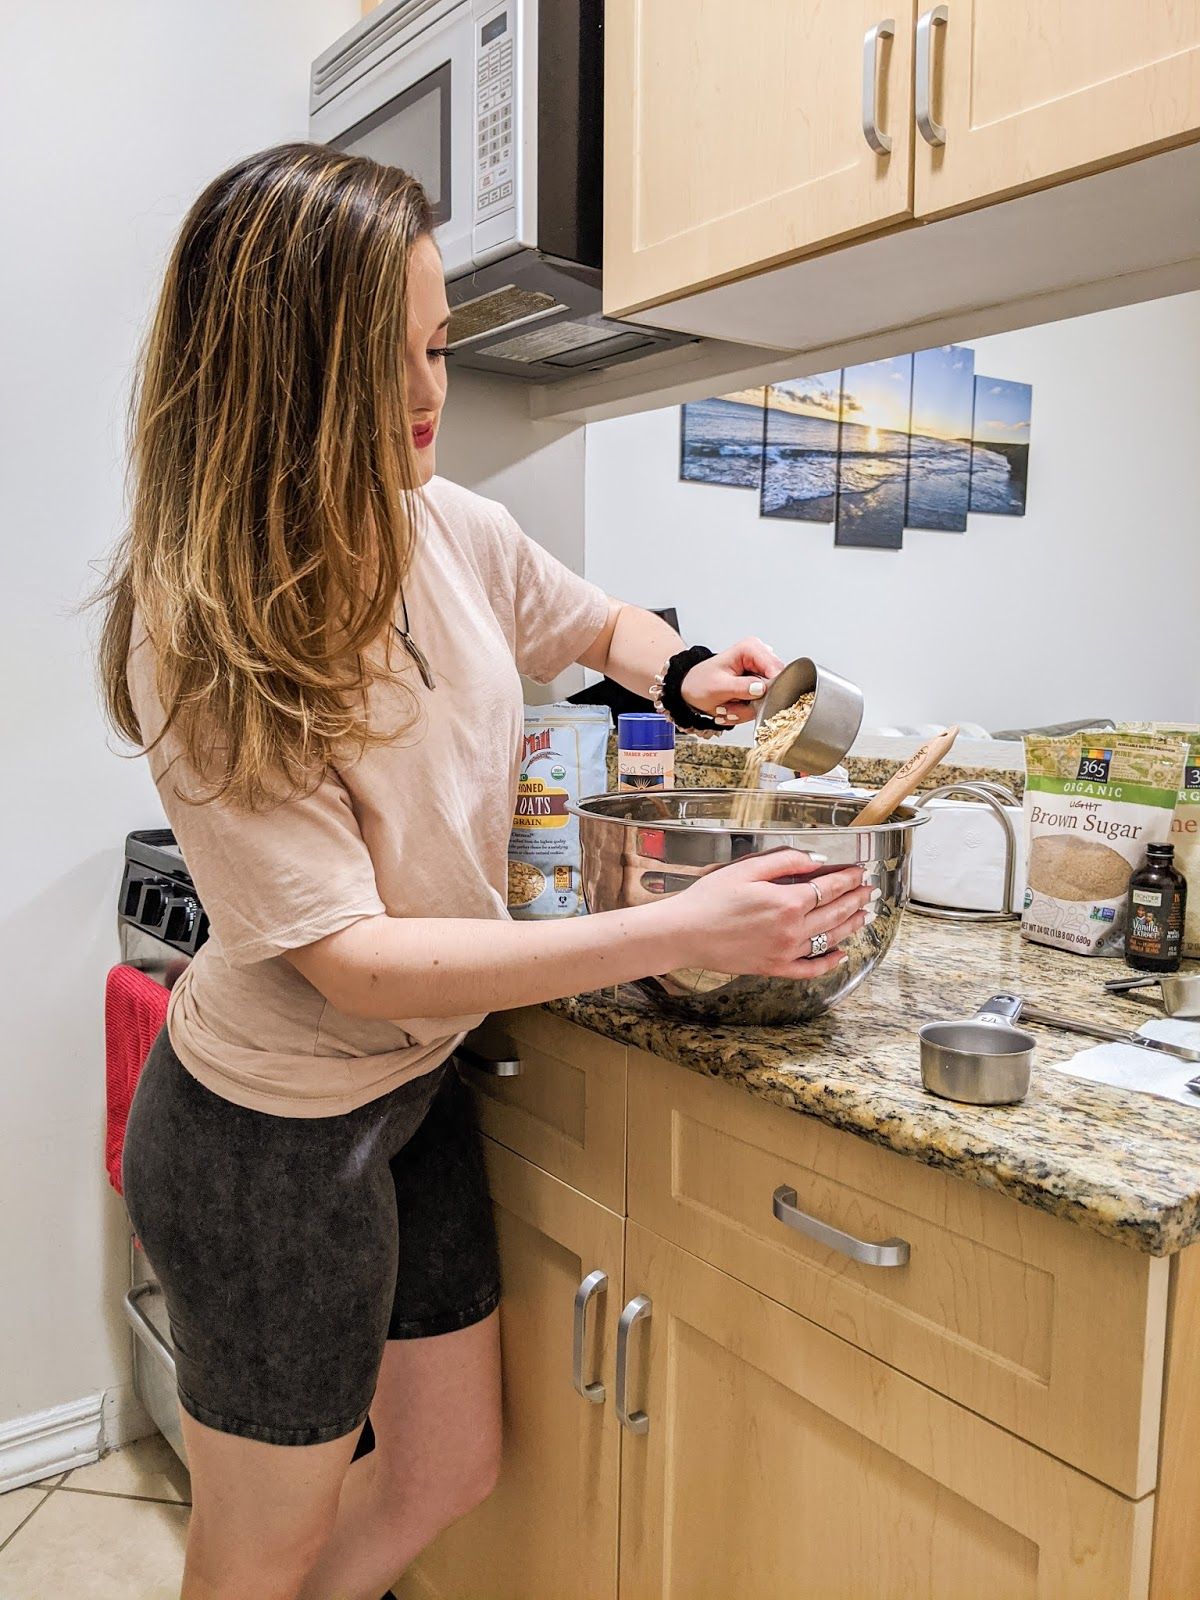 Nyc fashion blogger Kathleen Harper's baking photo shoot in her kitchen.